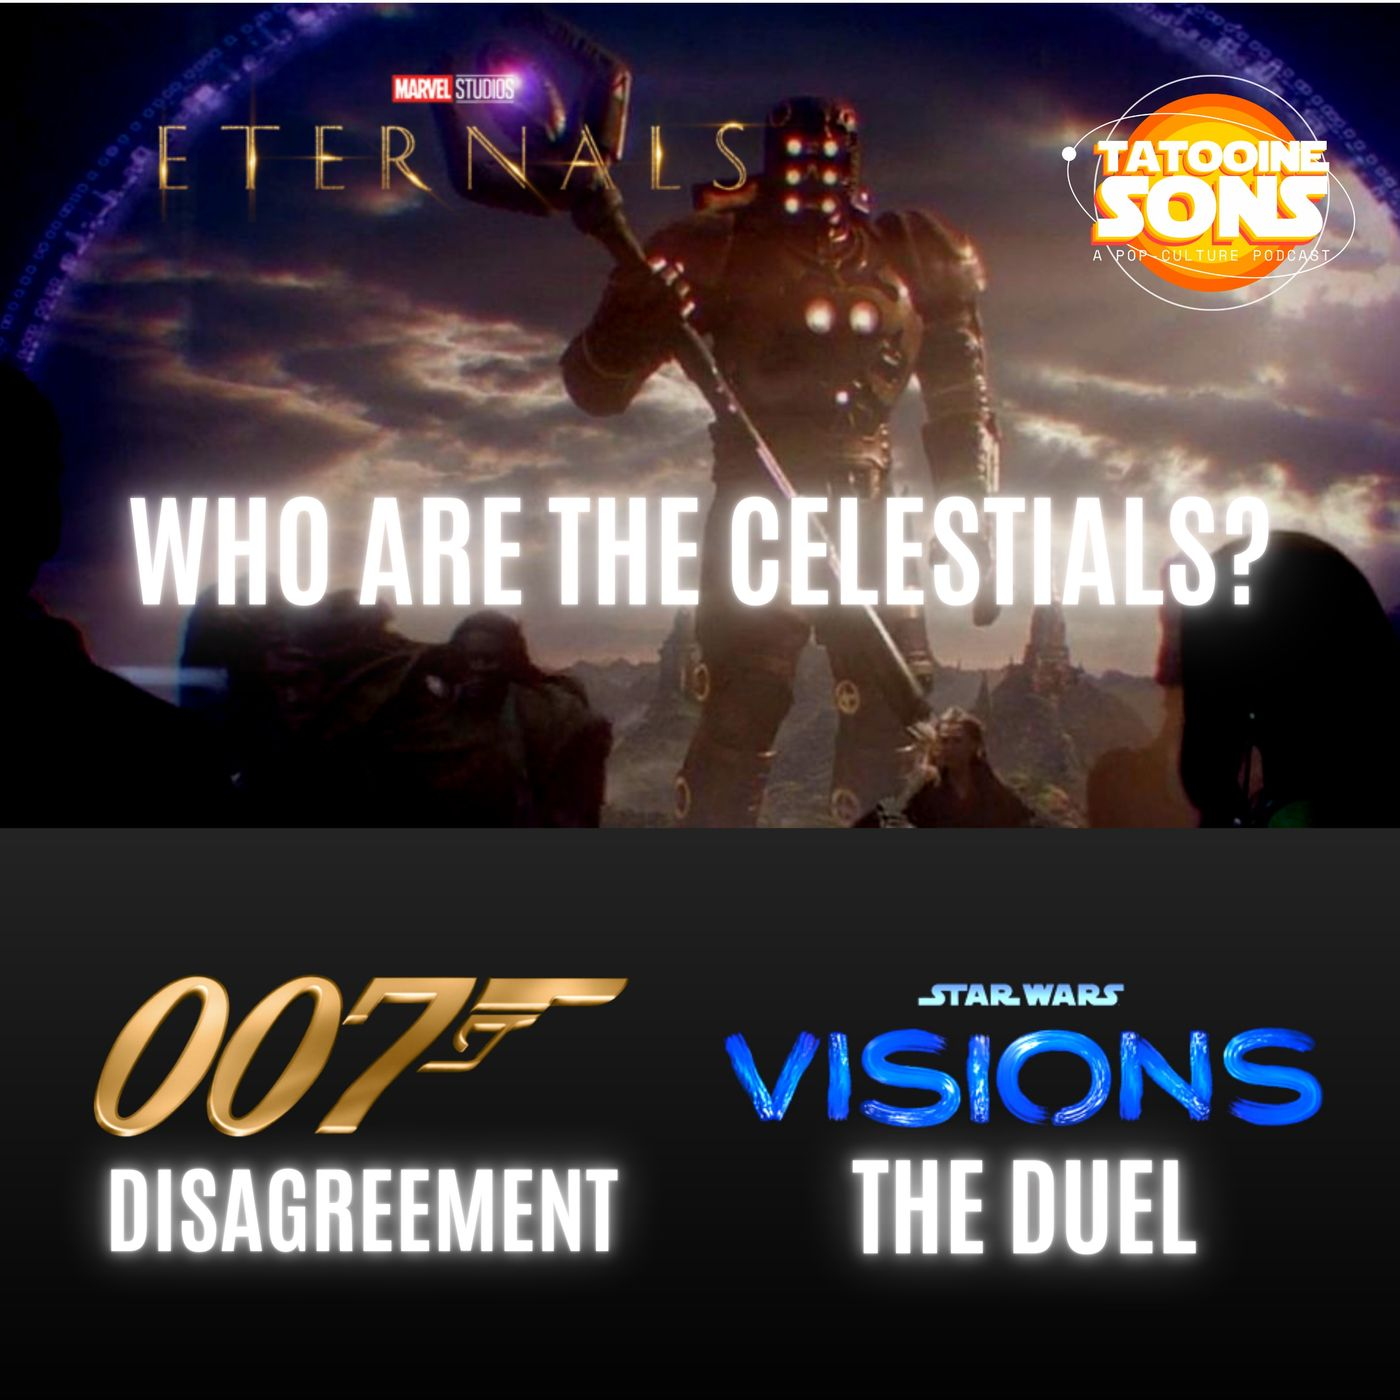 The Eternals - Who Are The Celestials?